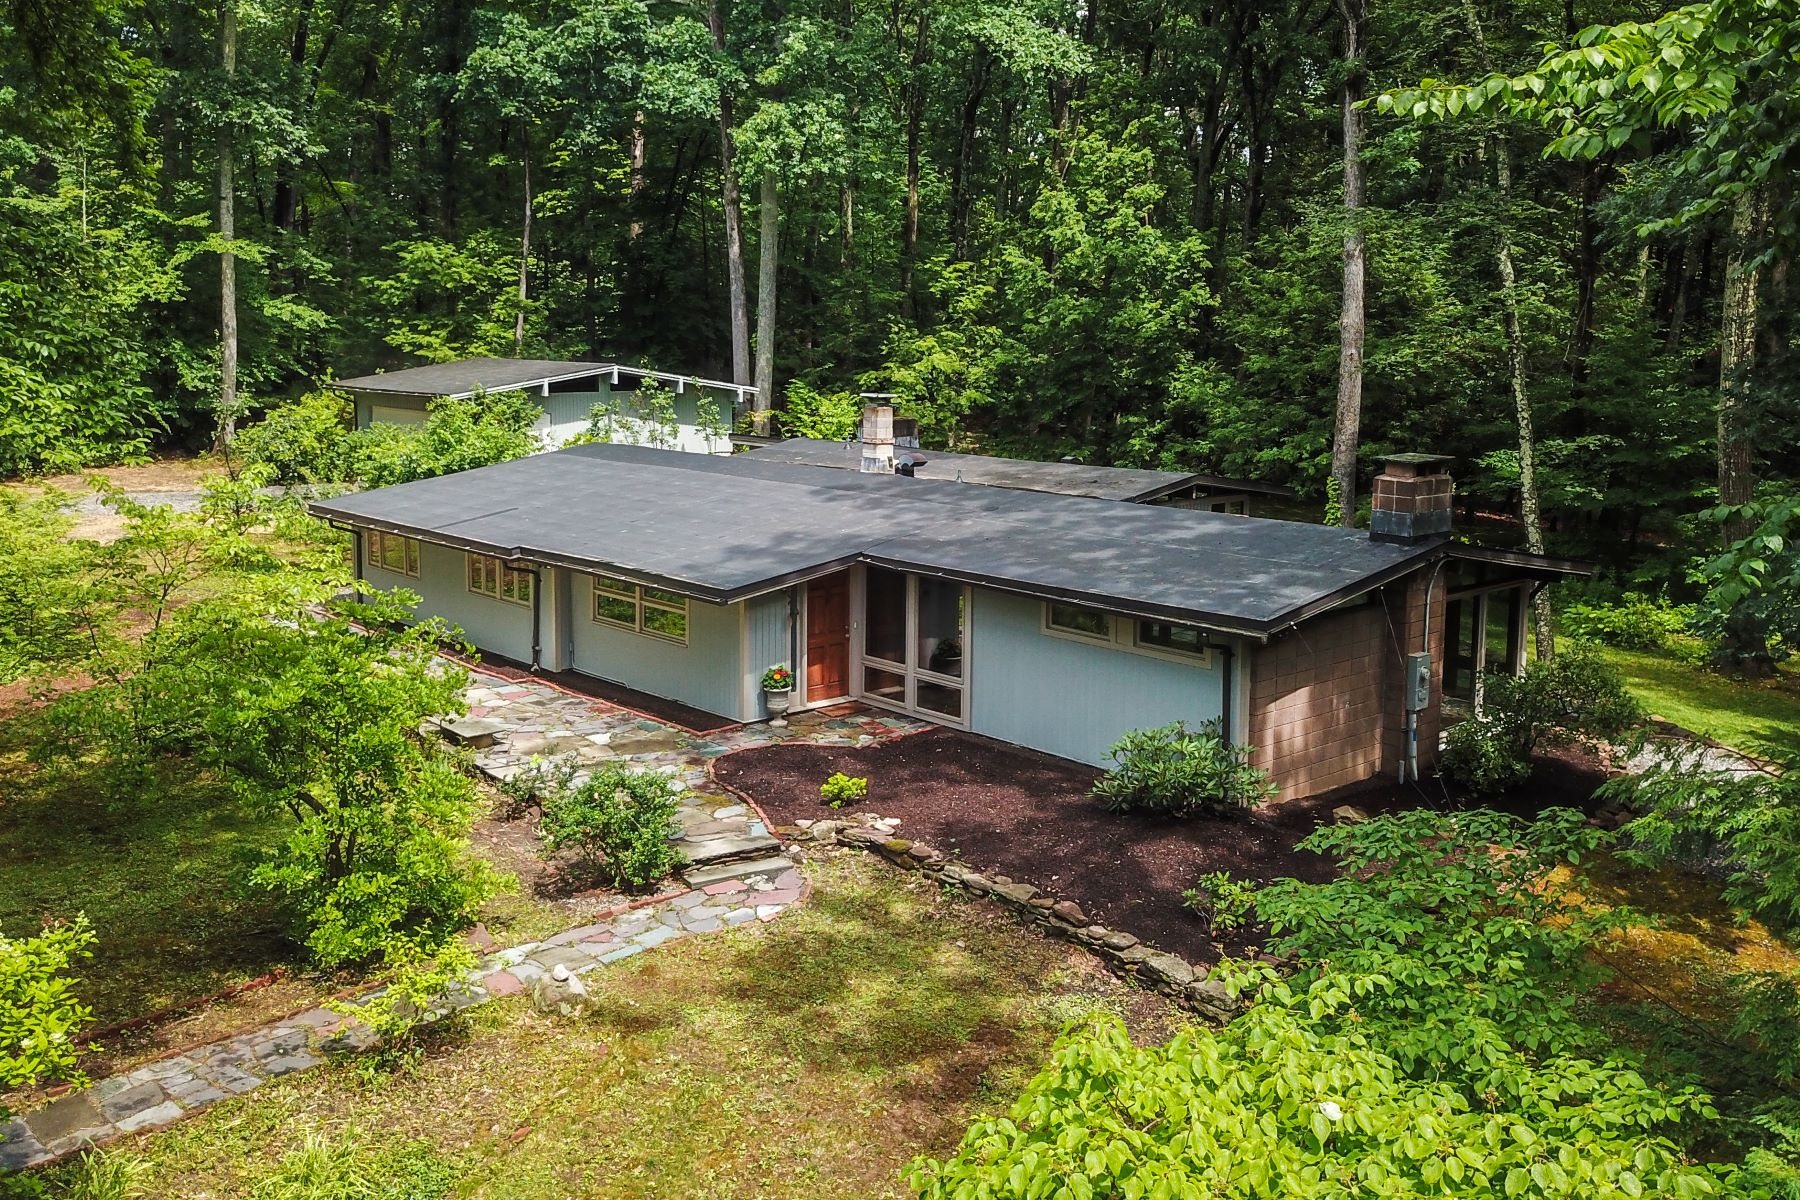 Single Family Homes for Sale at 73 Hickory Hill Road Simsbury, Connecticut 06070 United States